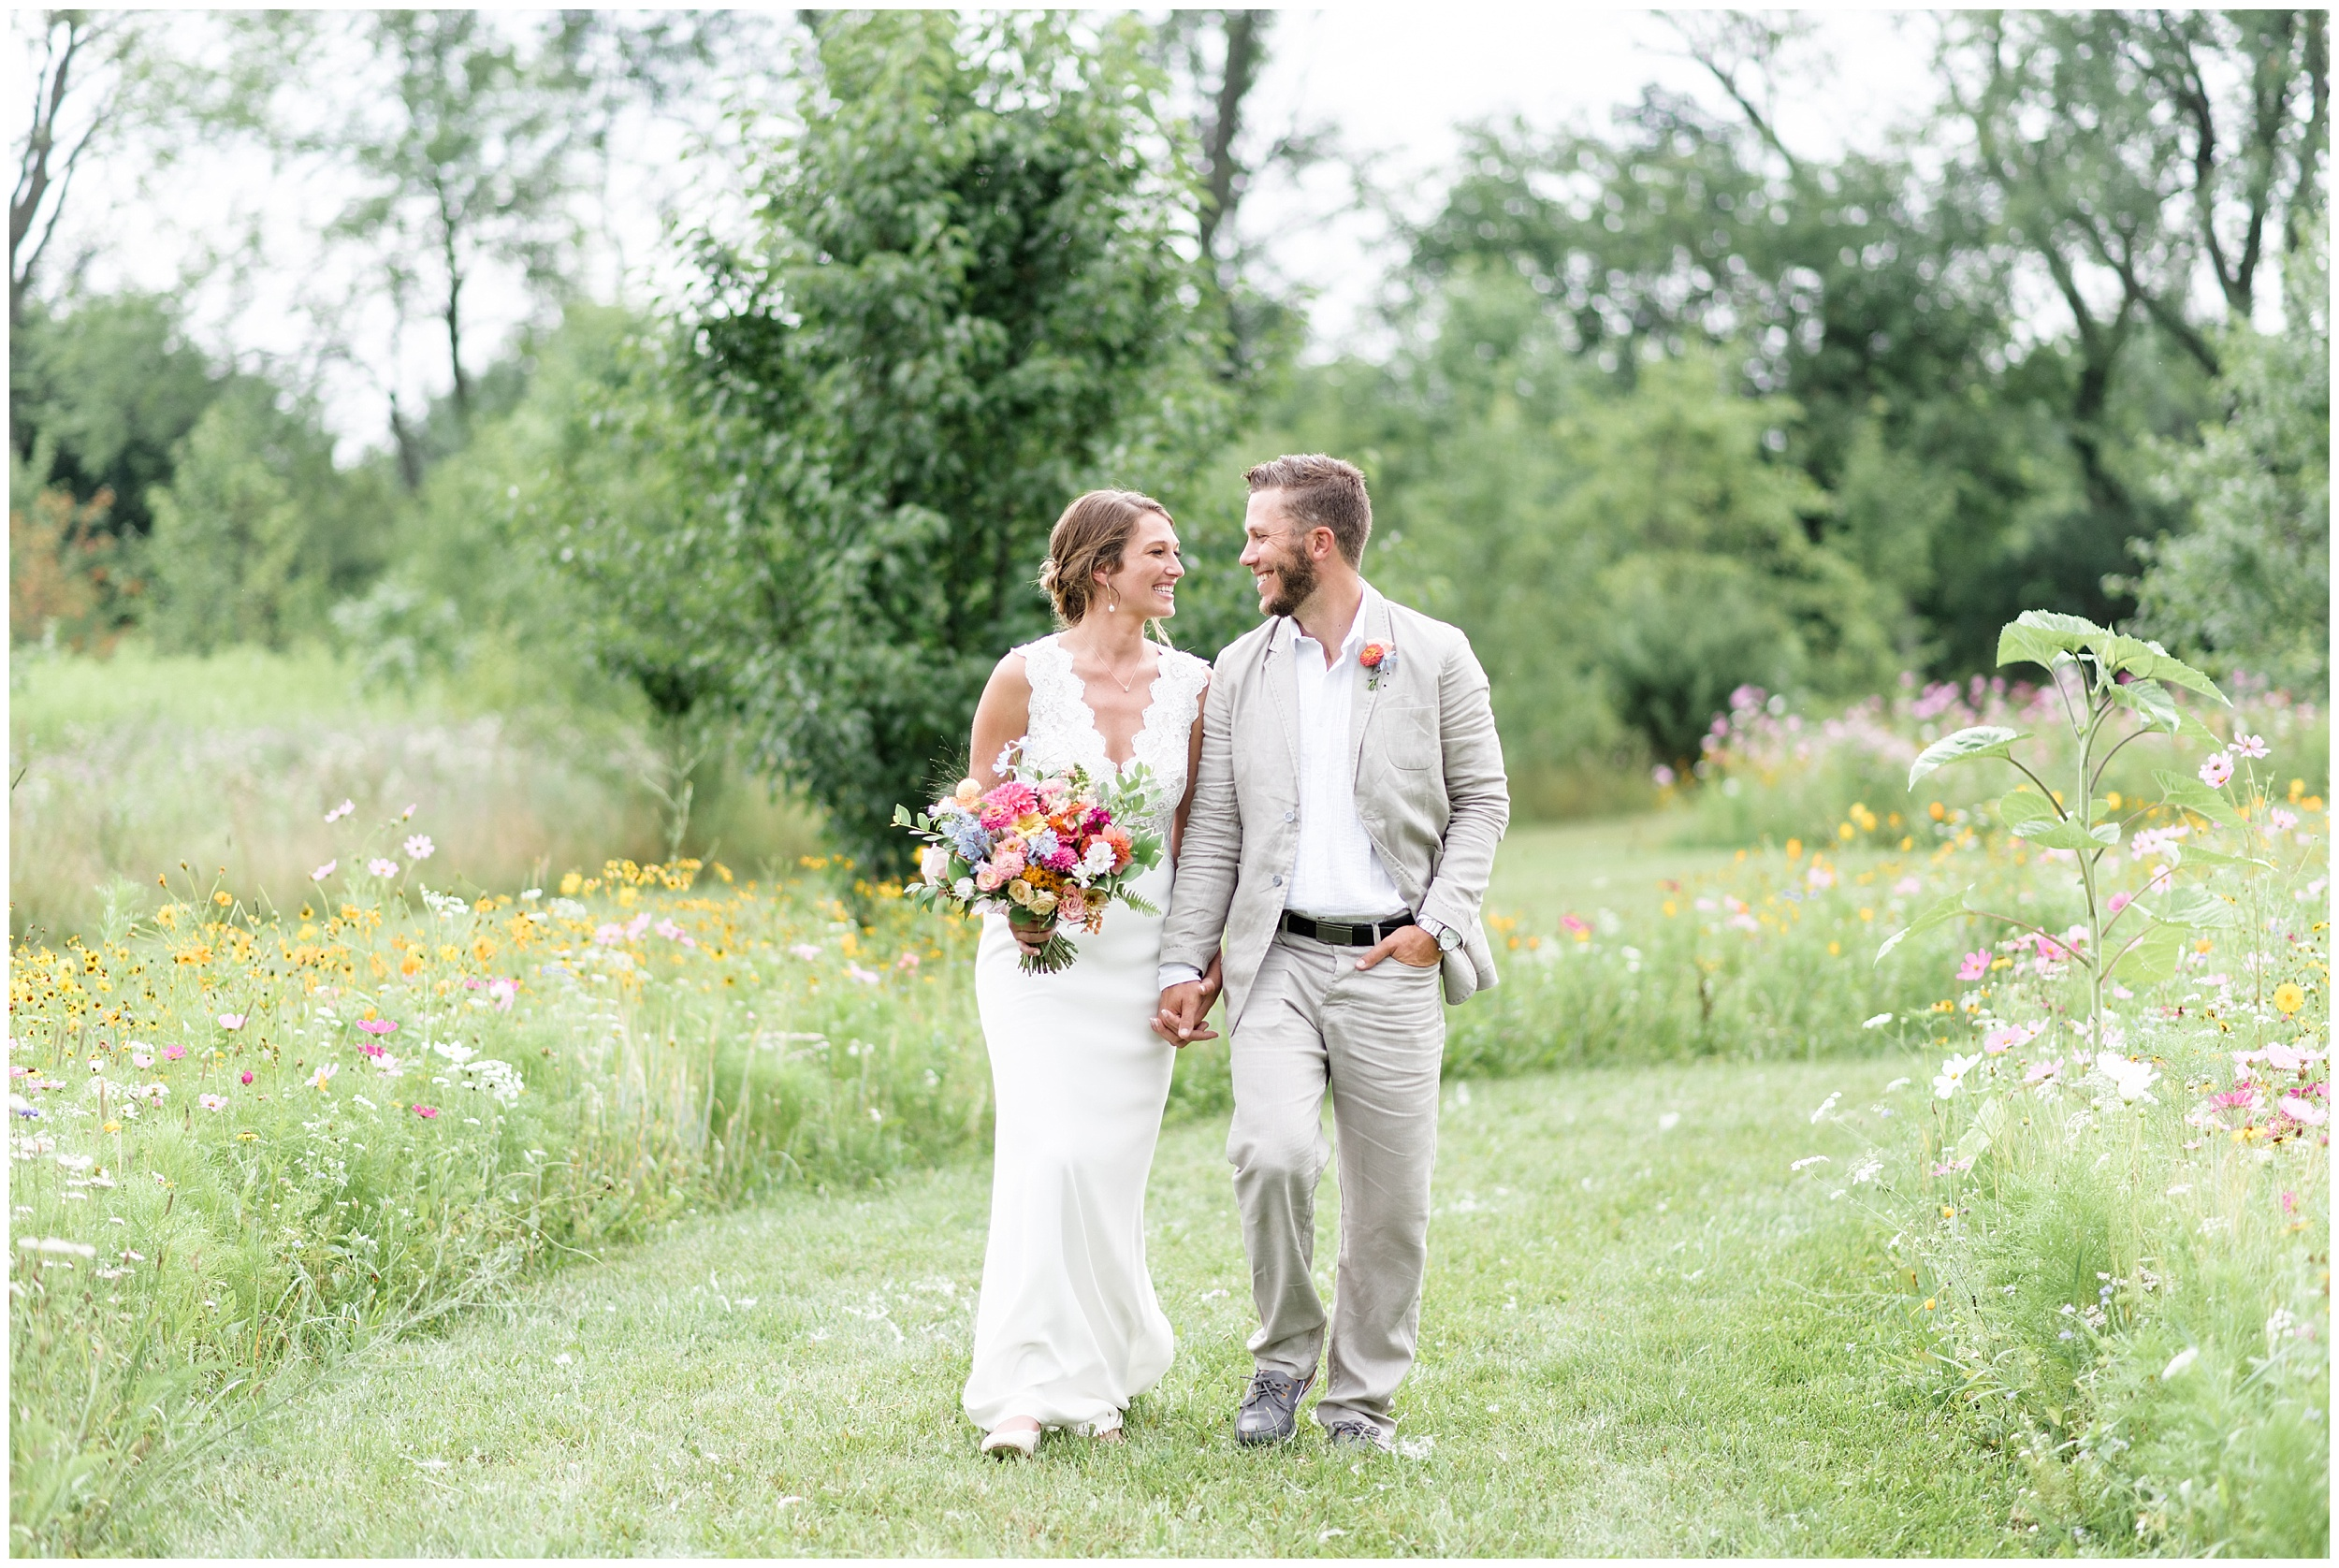 Whimsical-Ethereal-July-Kalamazoo-Wedding-Bright-Airy-Documentary-Milwaukee-Photographer_0074.jpg